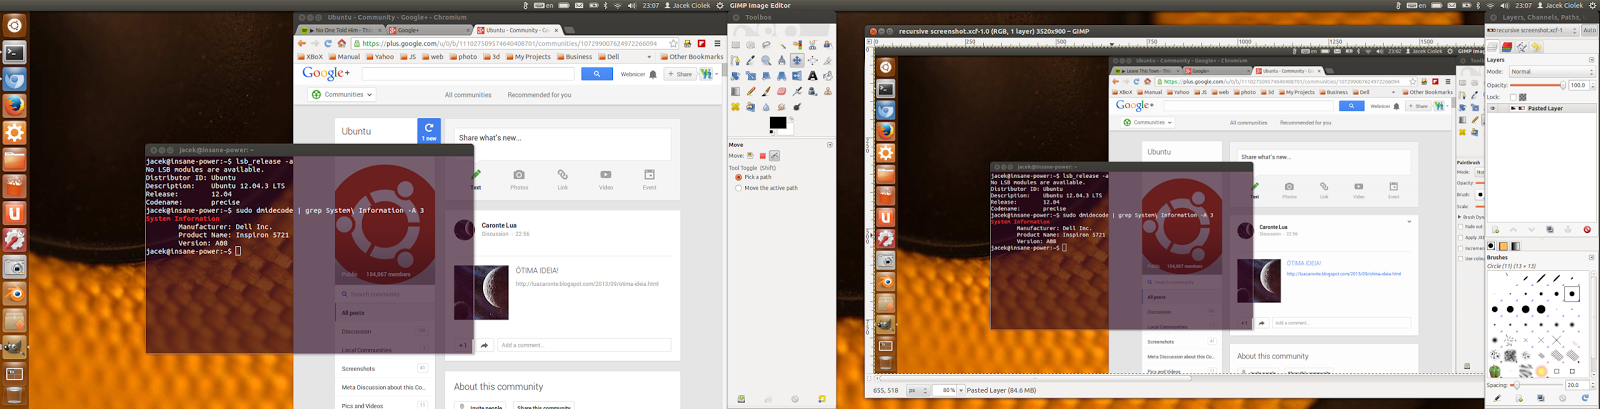 ubuntu 12.04.3 on Inspiron 17R